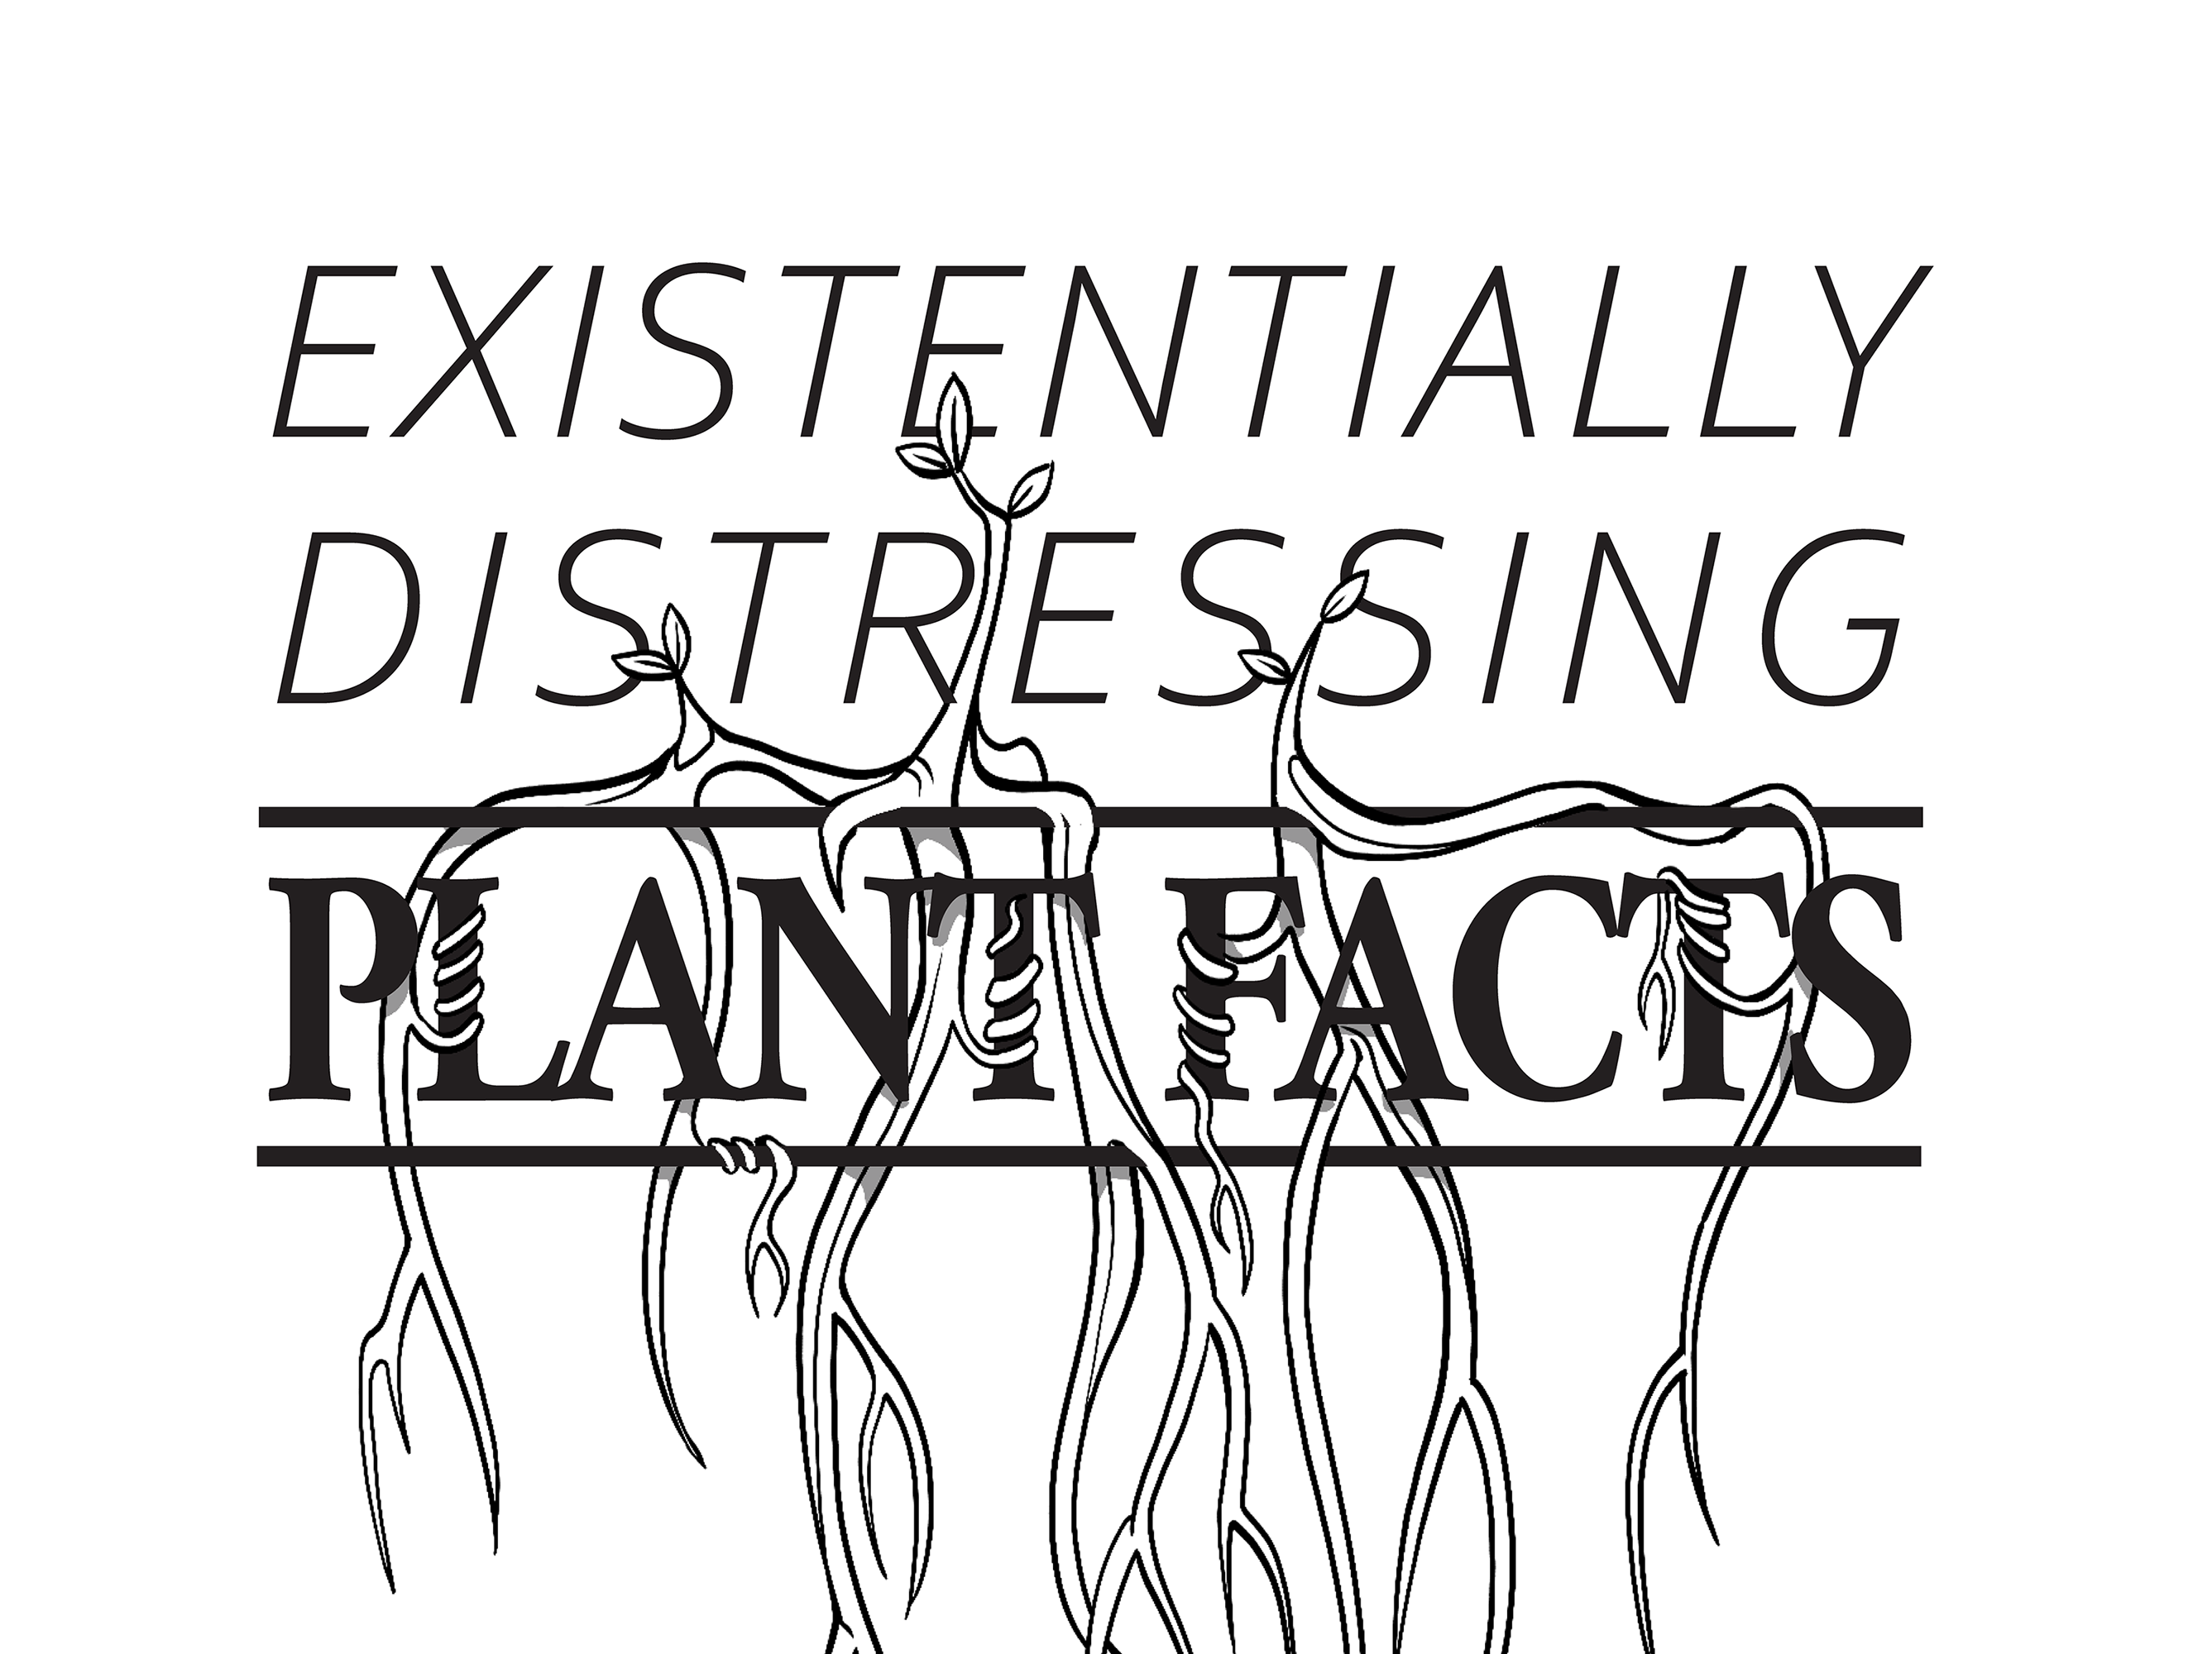 Existentially Distressing Plant Facts